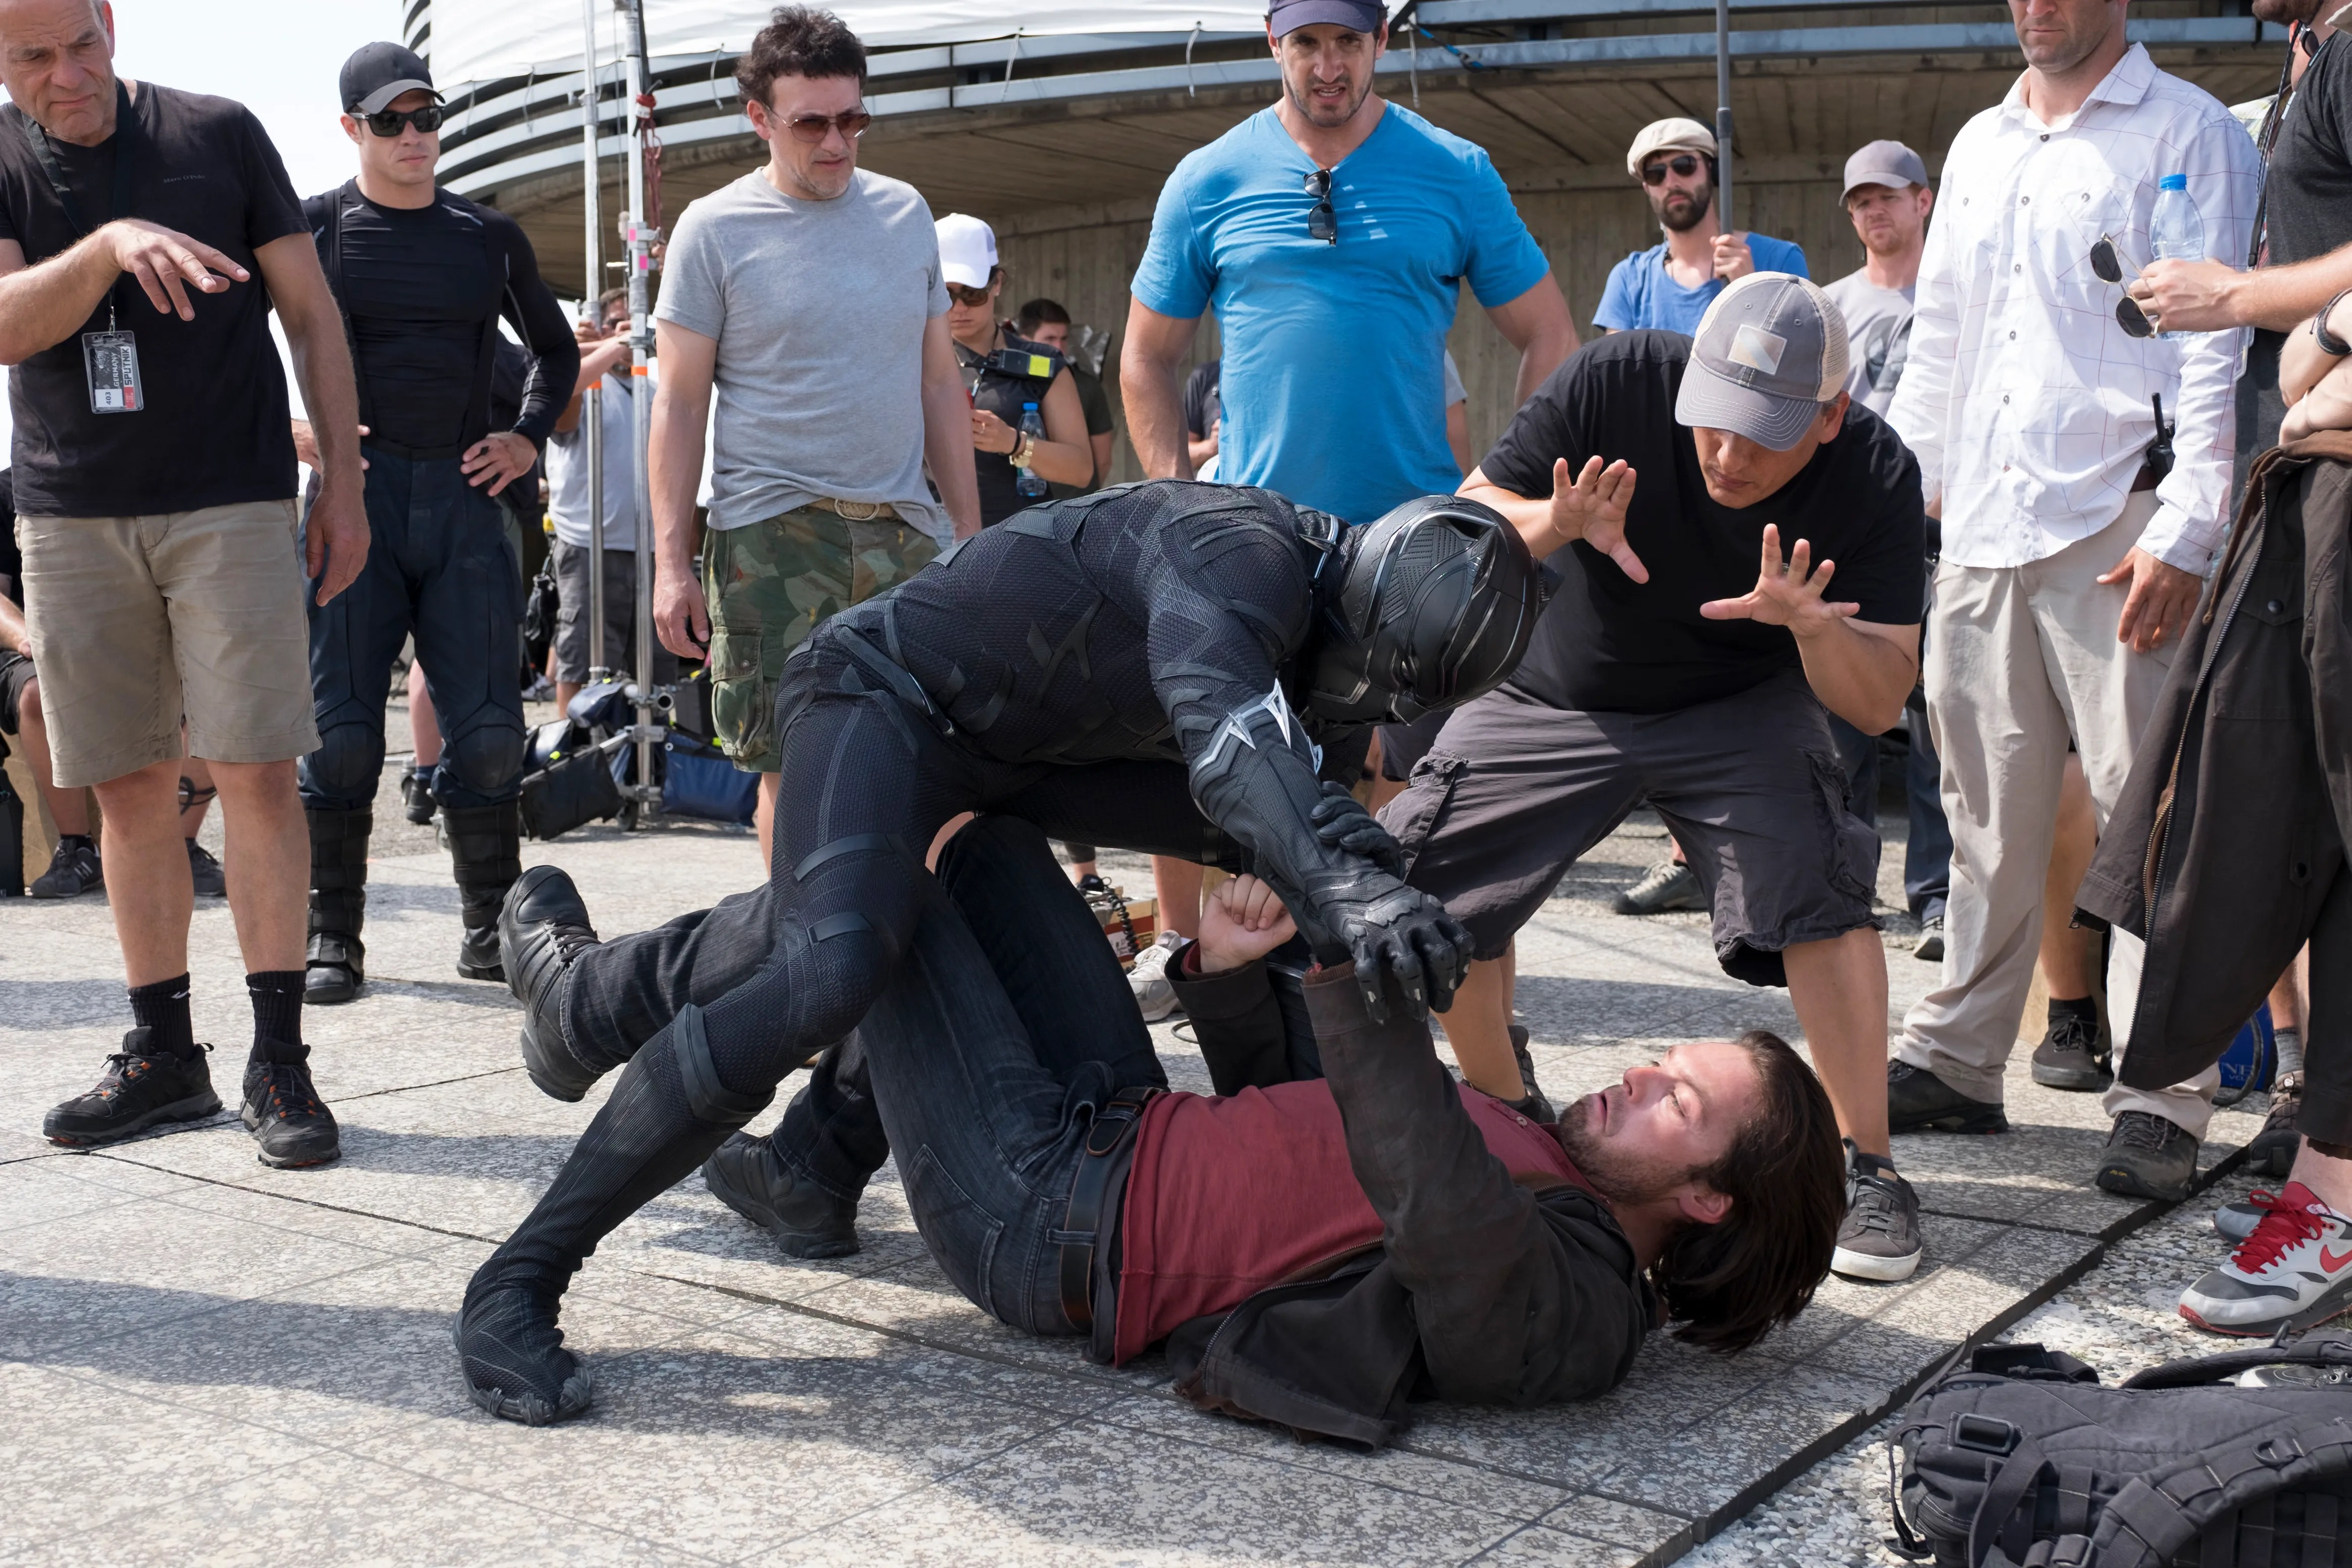 Image result for the russo brothers captain america civil war set